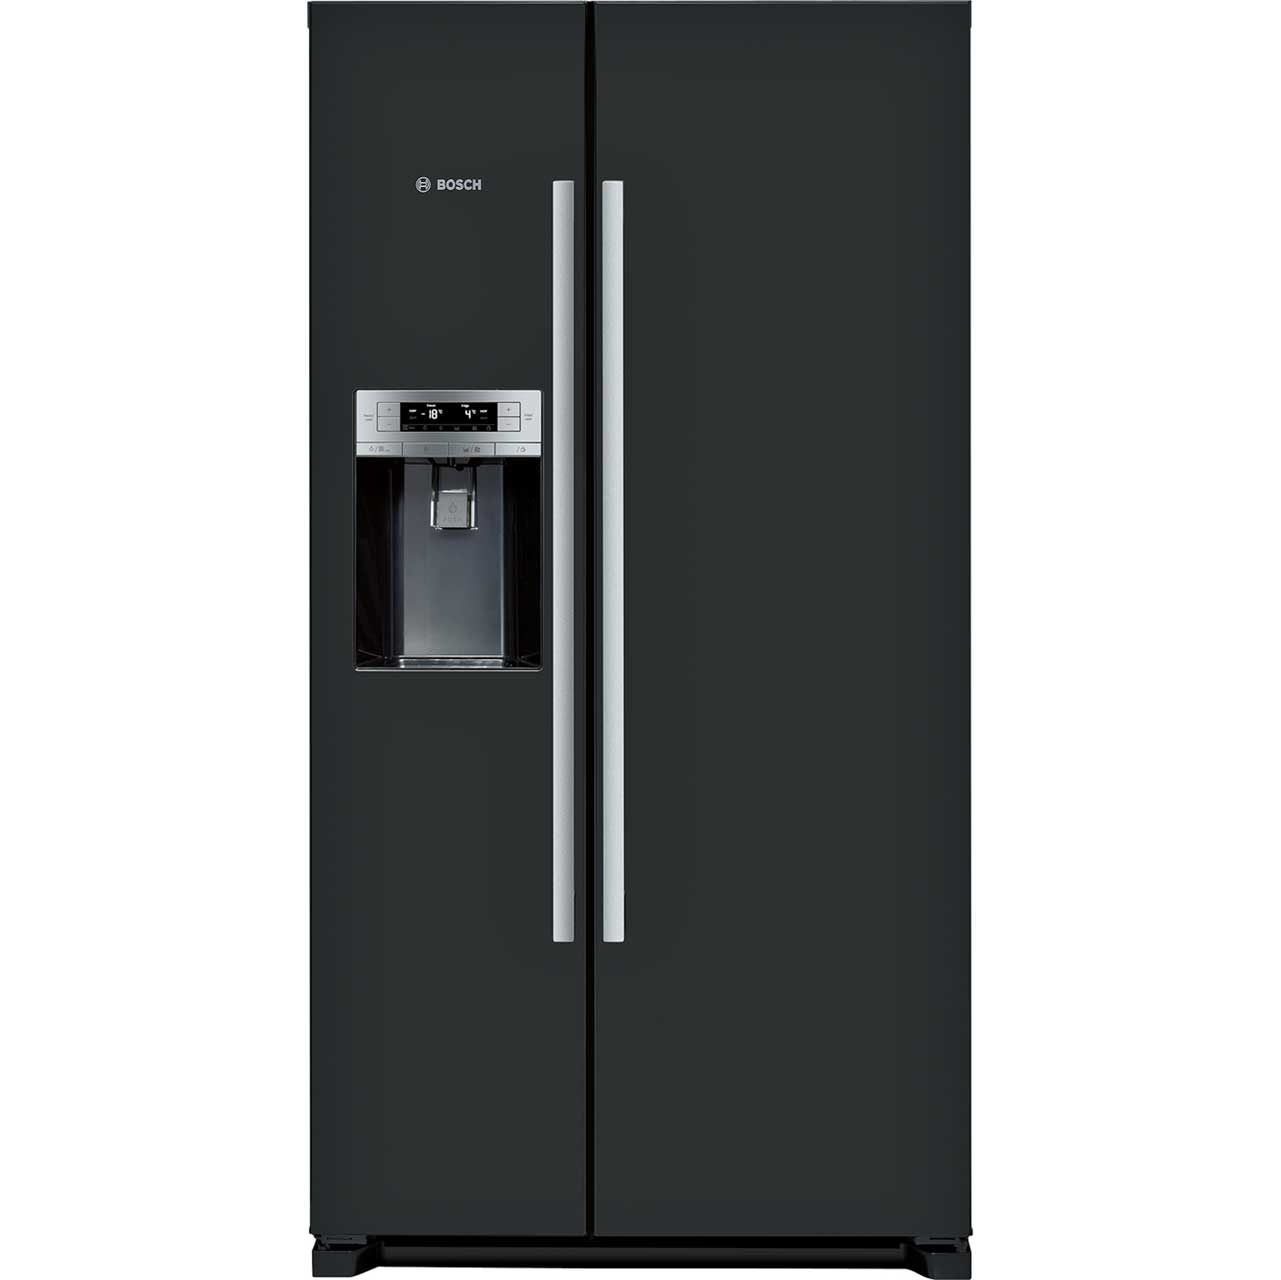 Bosch Serie 6 KAD90VB20G Free Standing American Fridge Freezer in Black